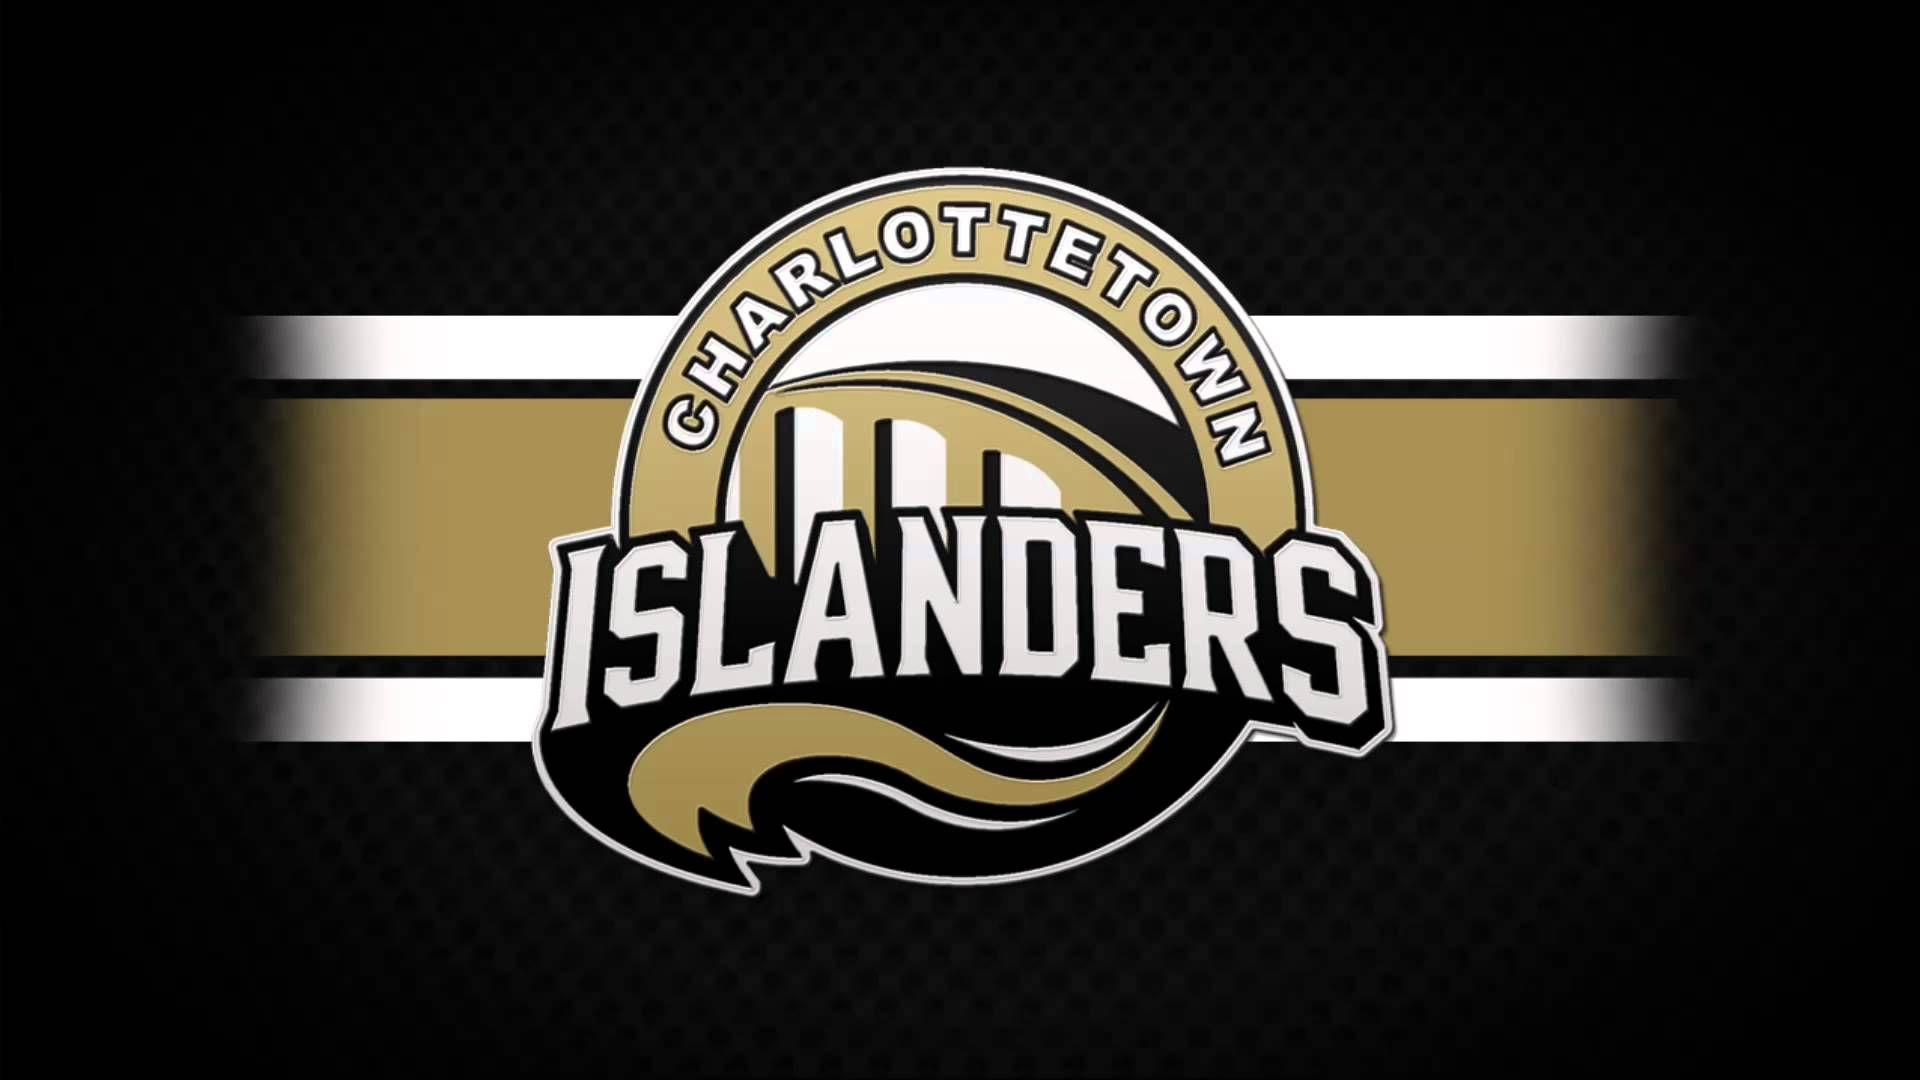 The Charlottetown Islanders were among the most active teams atthe 2015 QMJHL Entry Draft in Sherbrooke, Quebec on Saturday. Before the Islanders were slated to make their selection with the fifth-overall pick, the organization traded …